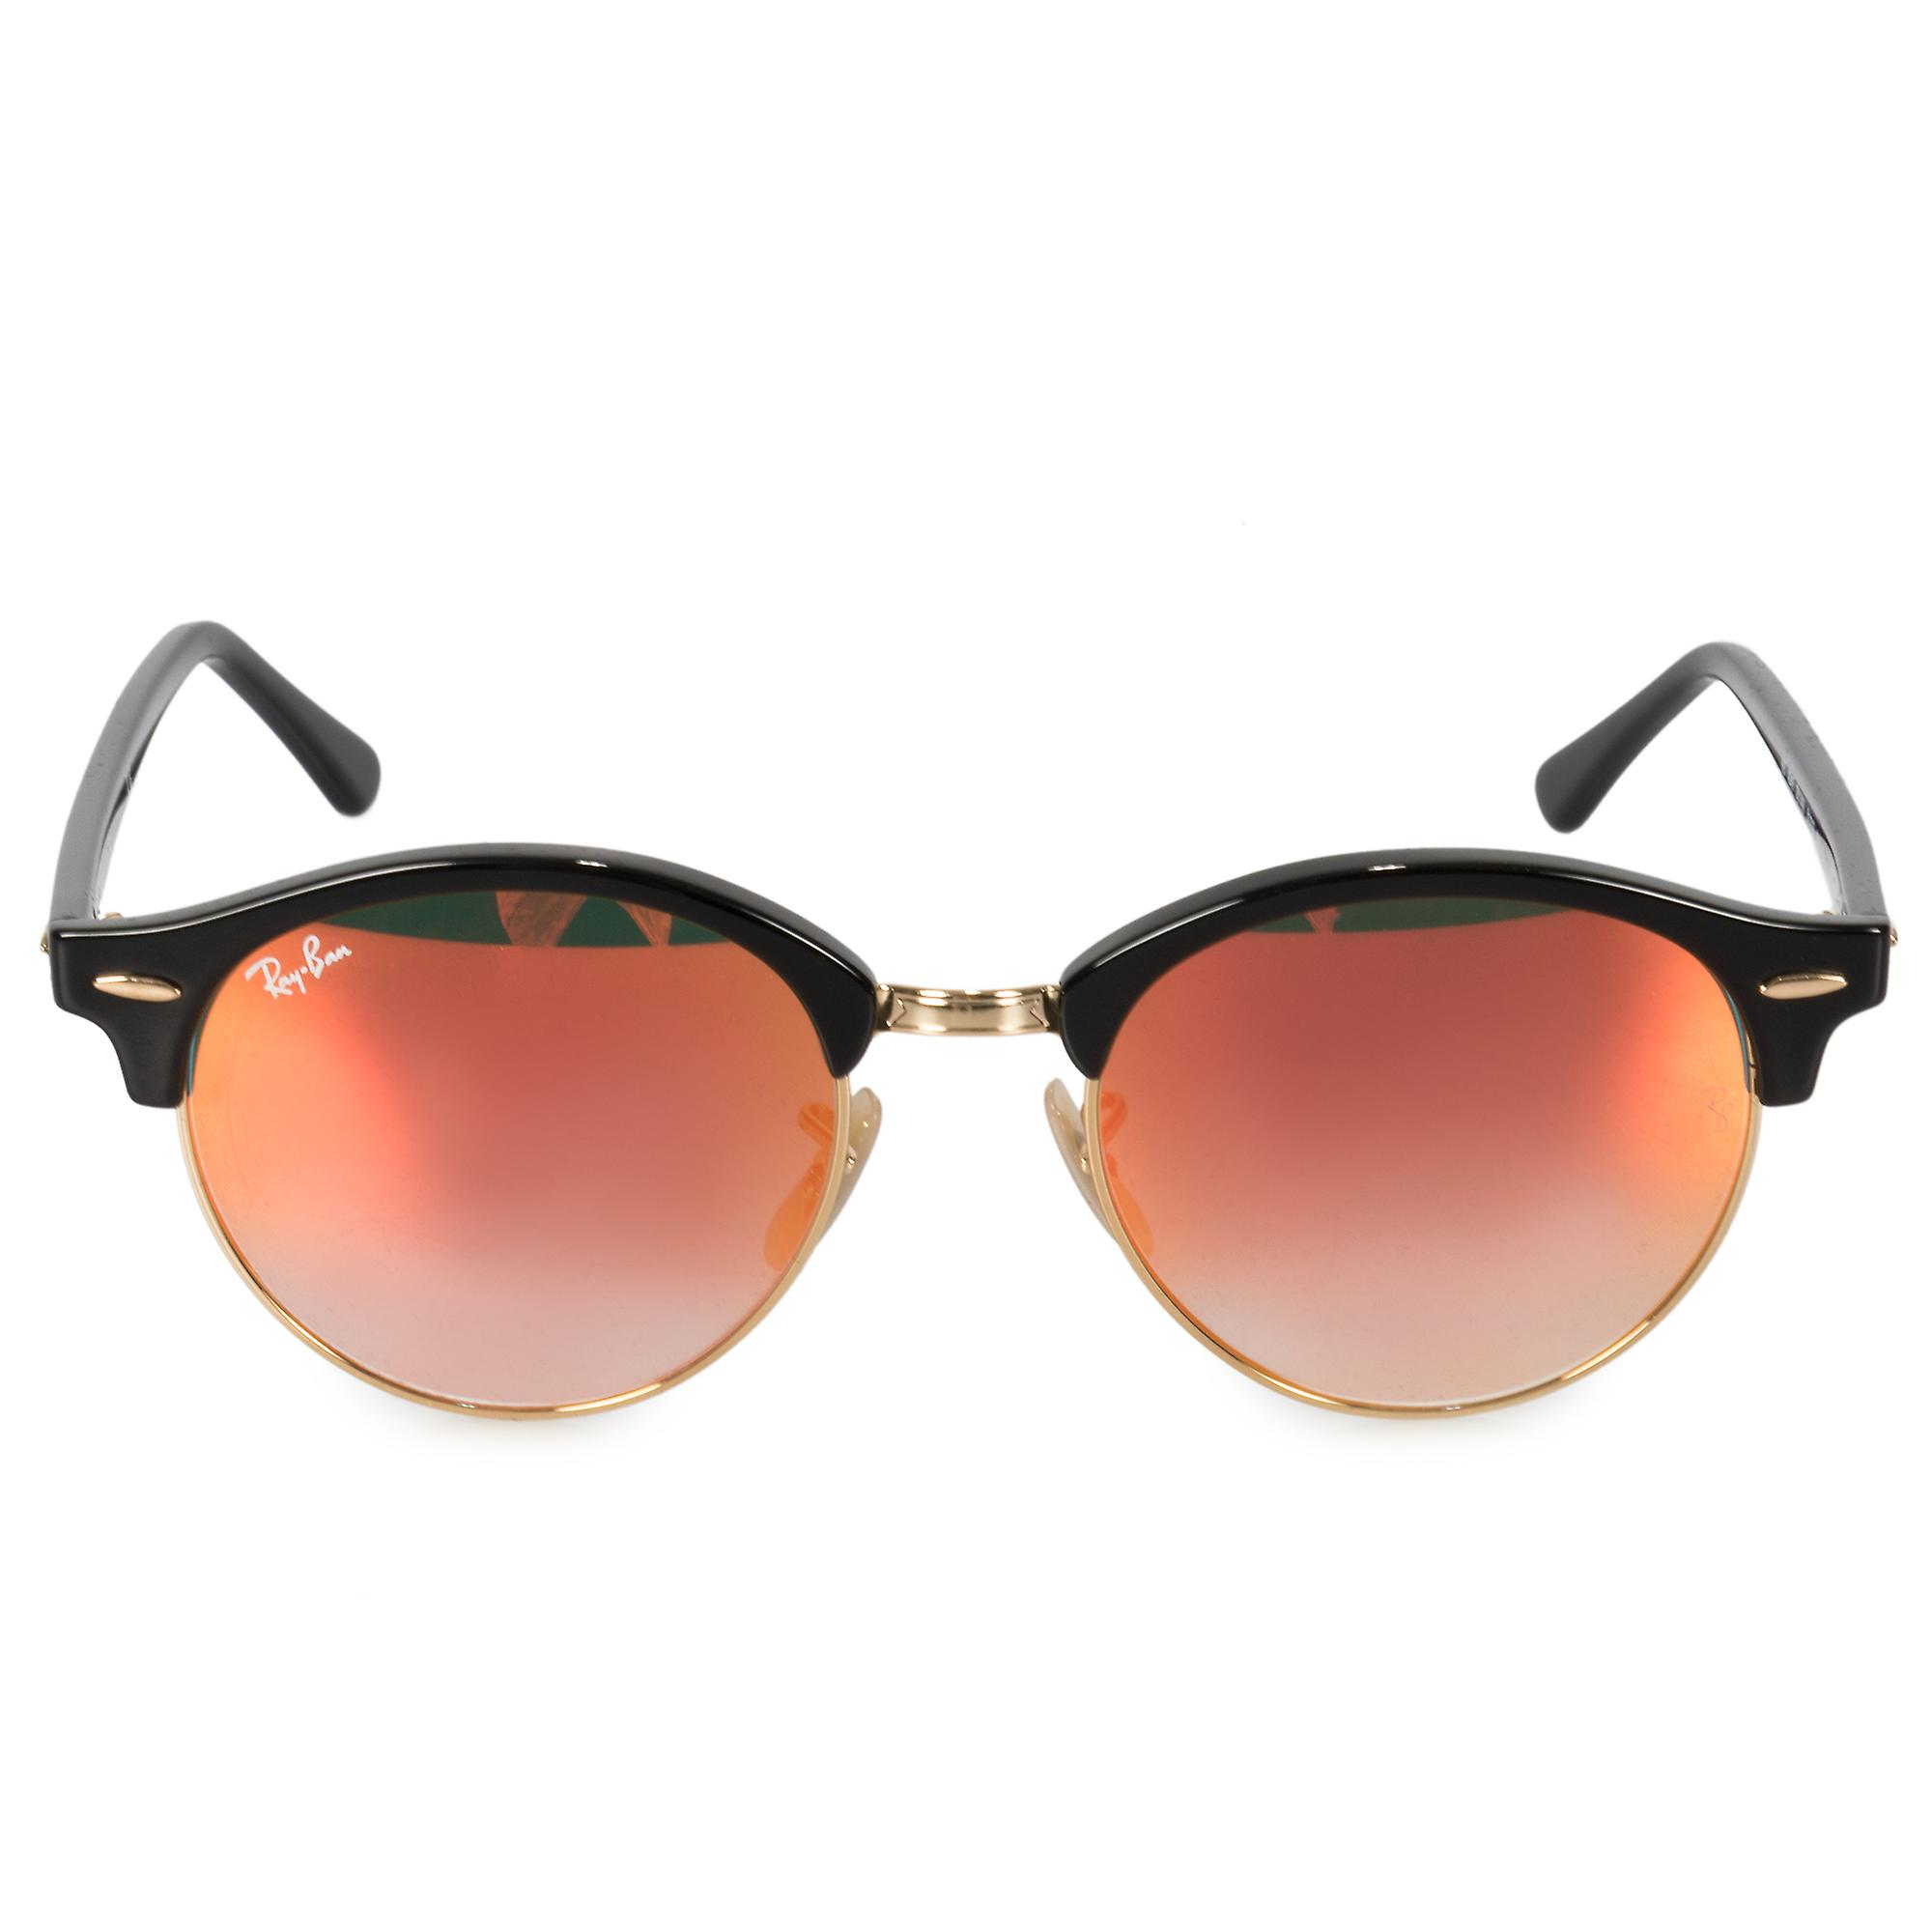 Ray-Ban Clubround Classic Sunglasses RB4246 901/4W 51